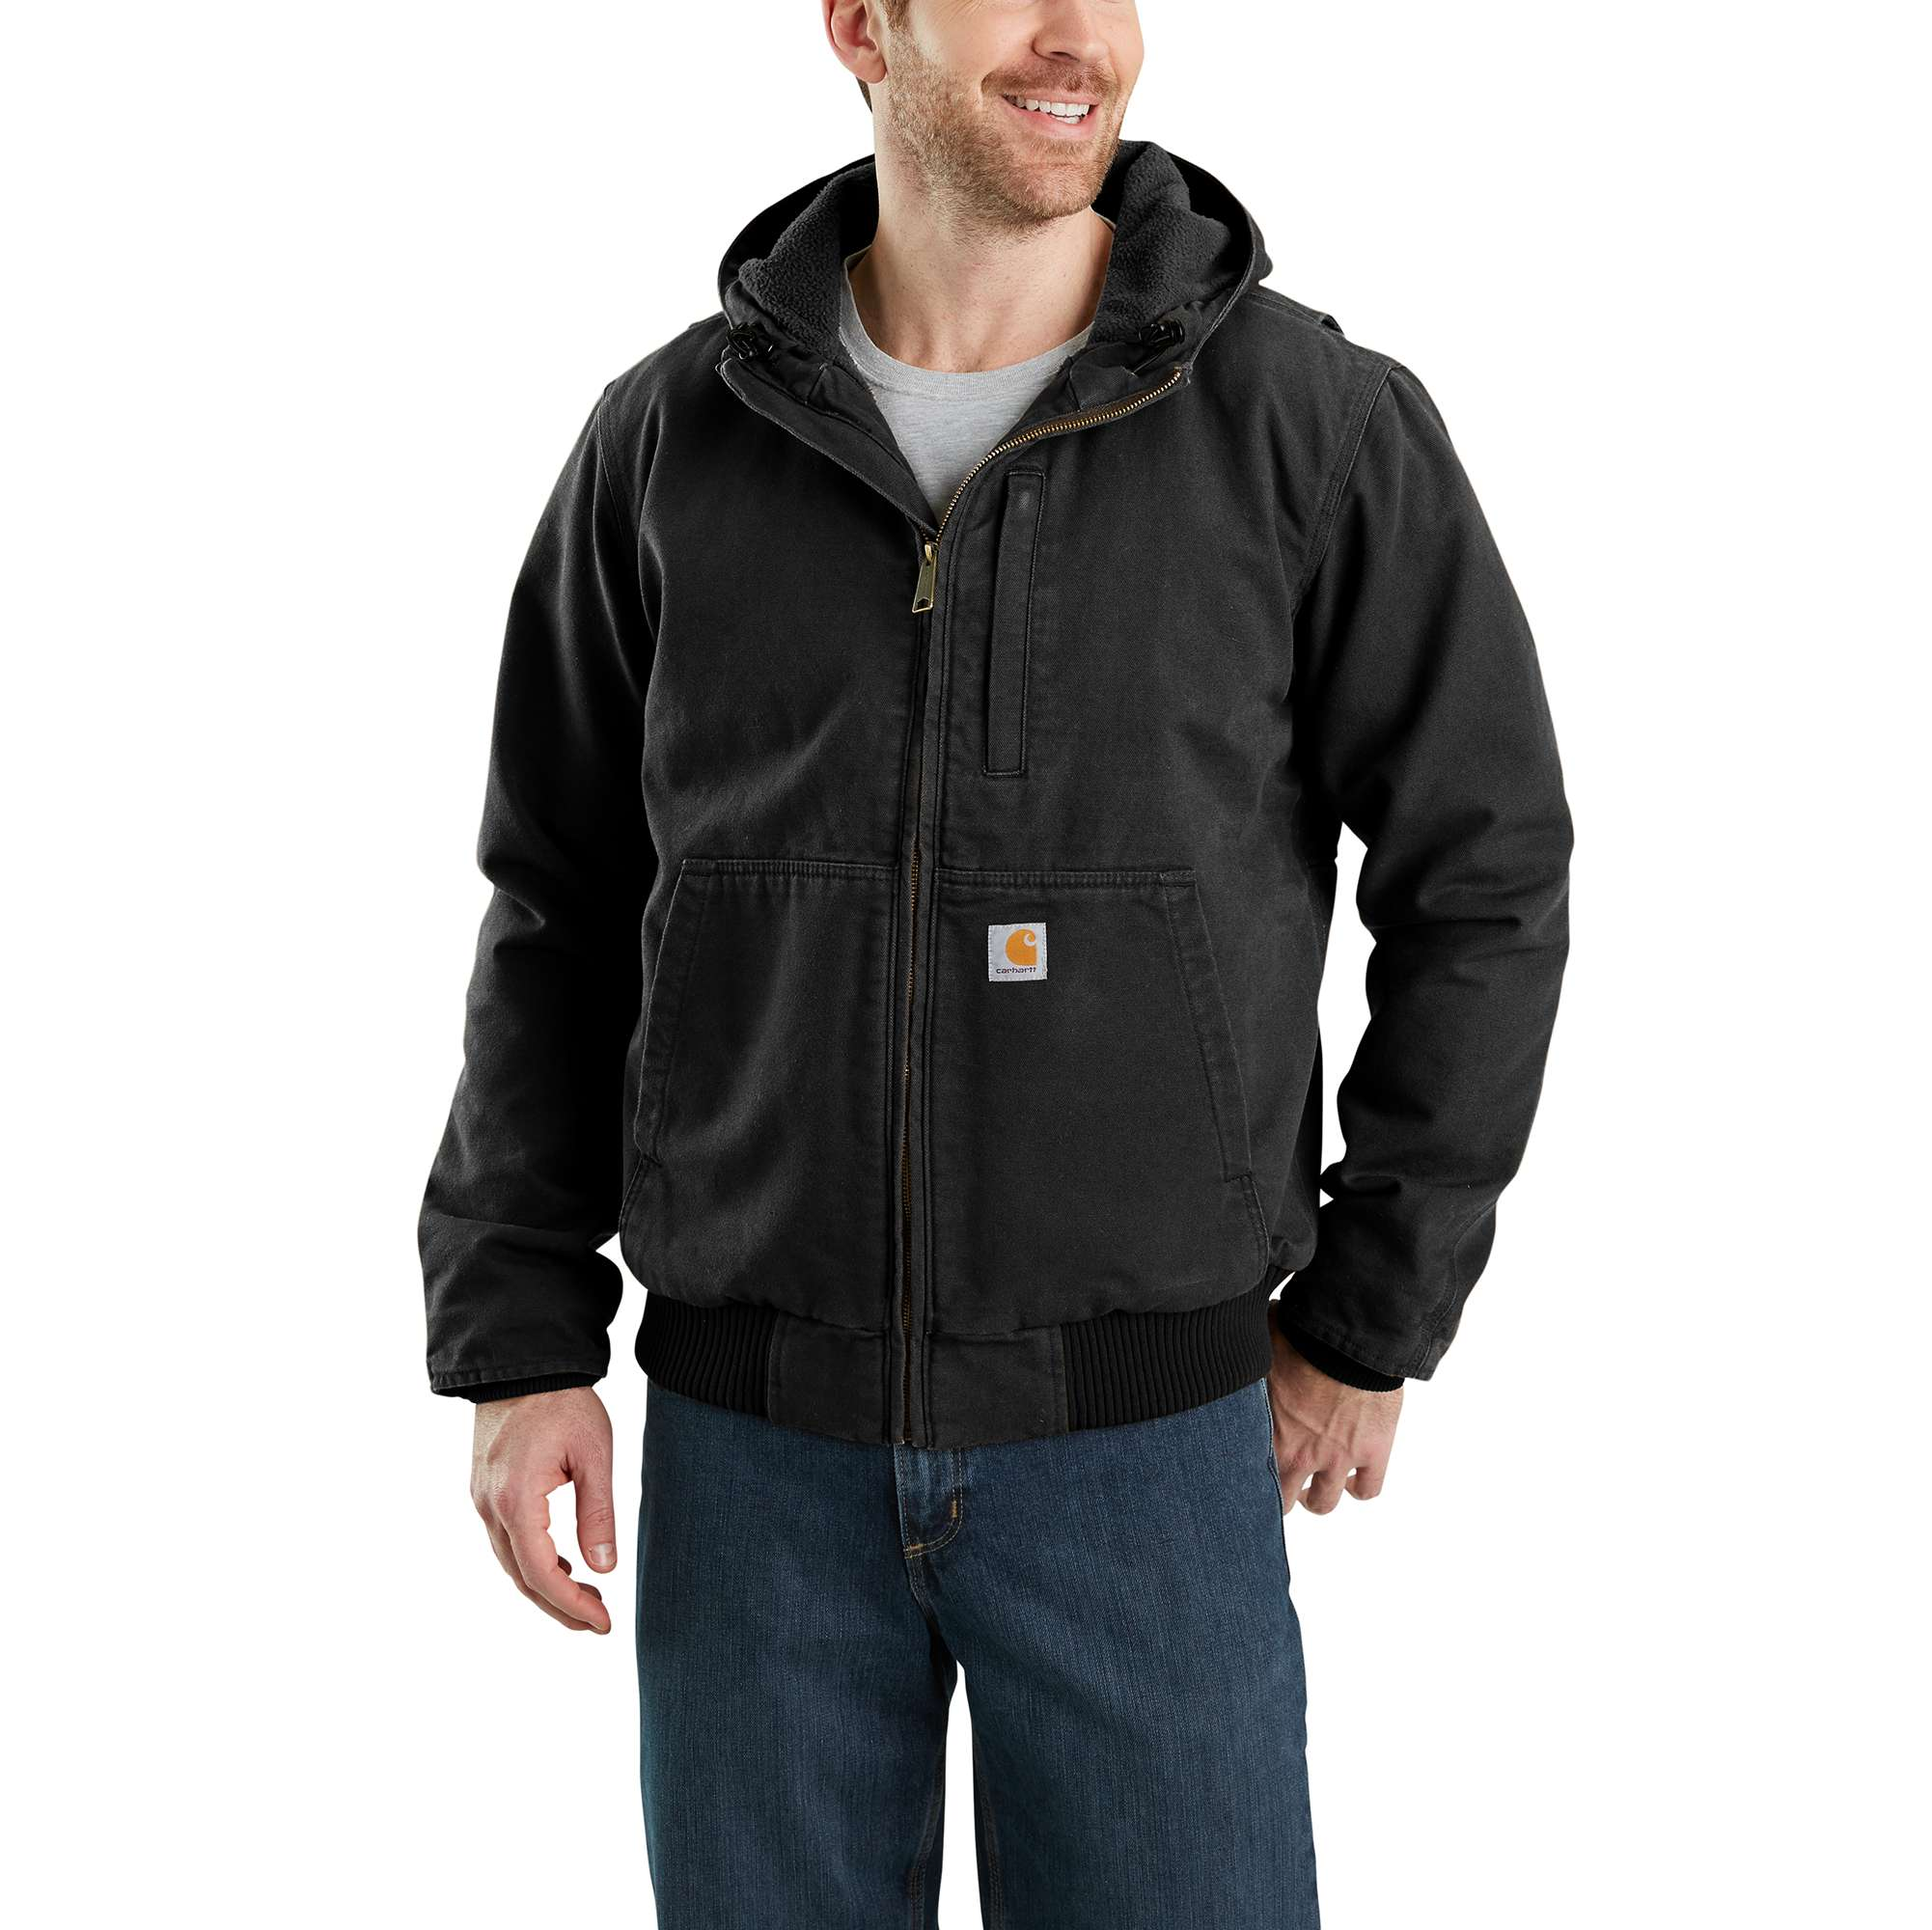 Carhartt Full Swing Armstrong Active Jac